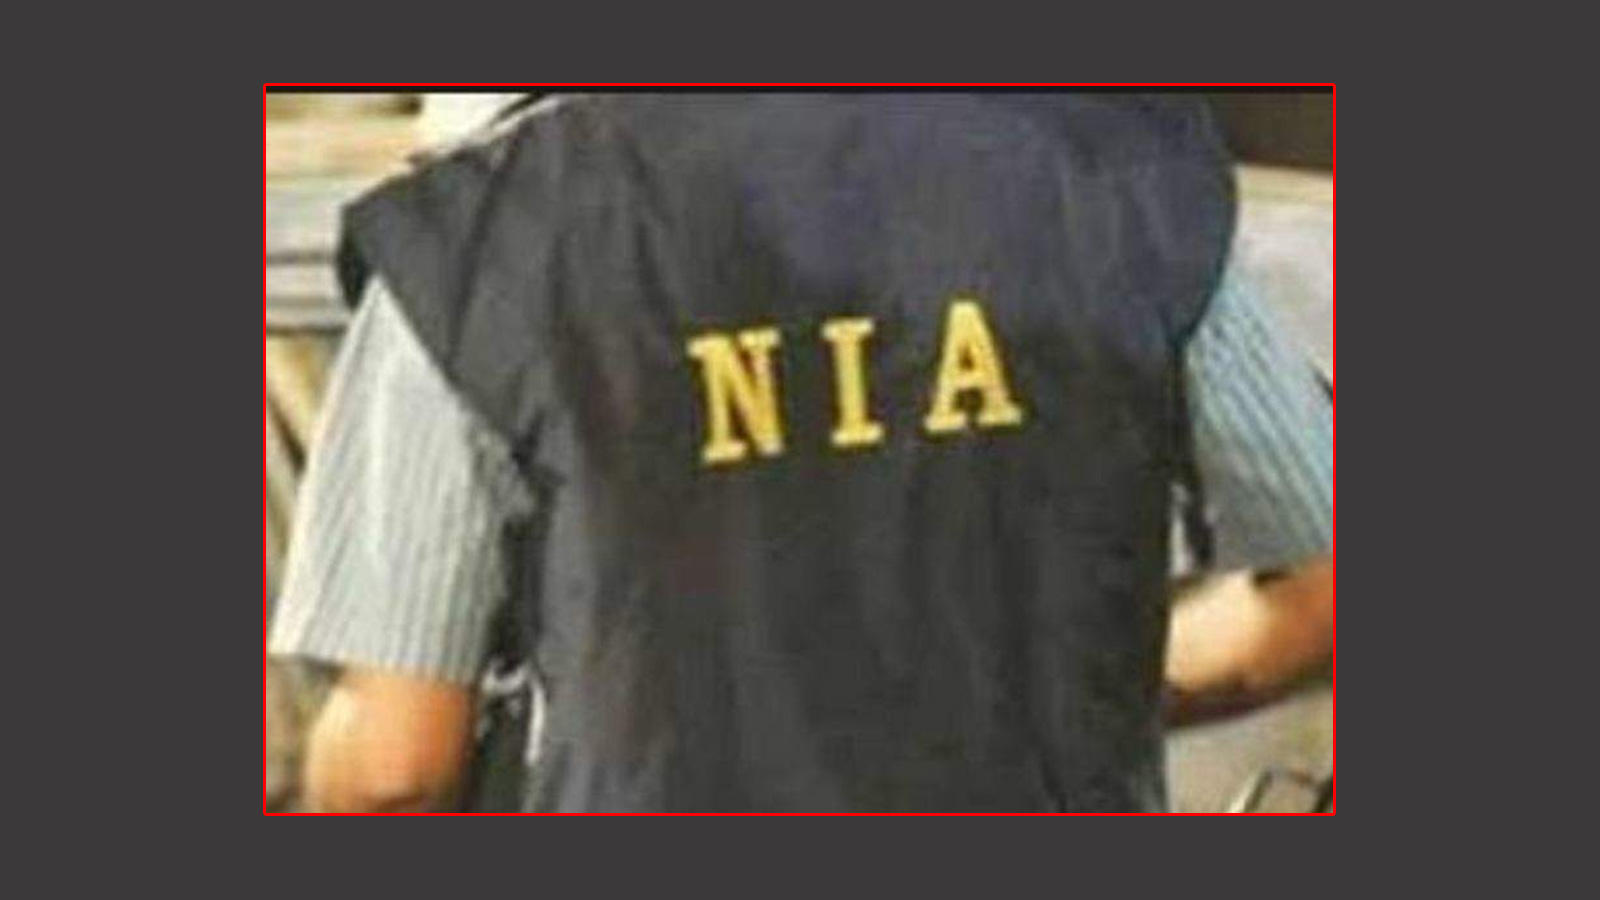 kashmiri-separatist-leaders-received-funds-from-abroad-utilised-them-for-personal-gains-alleges-nia